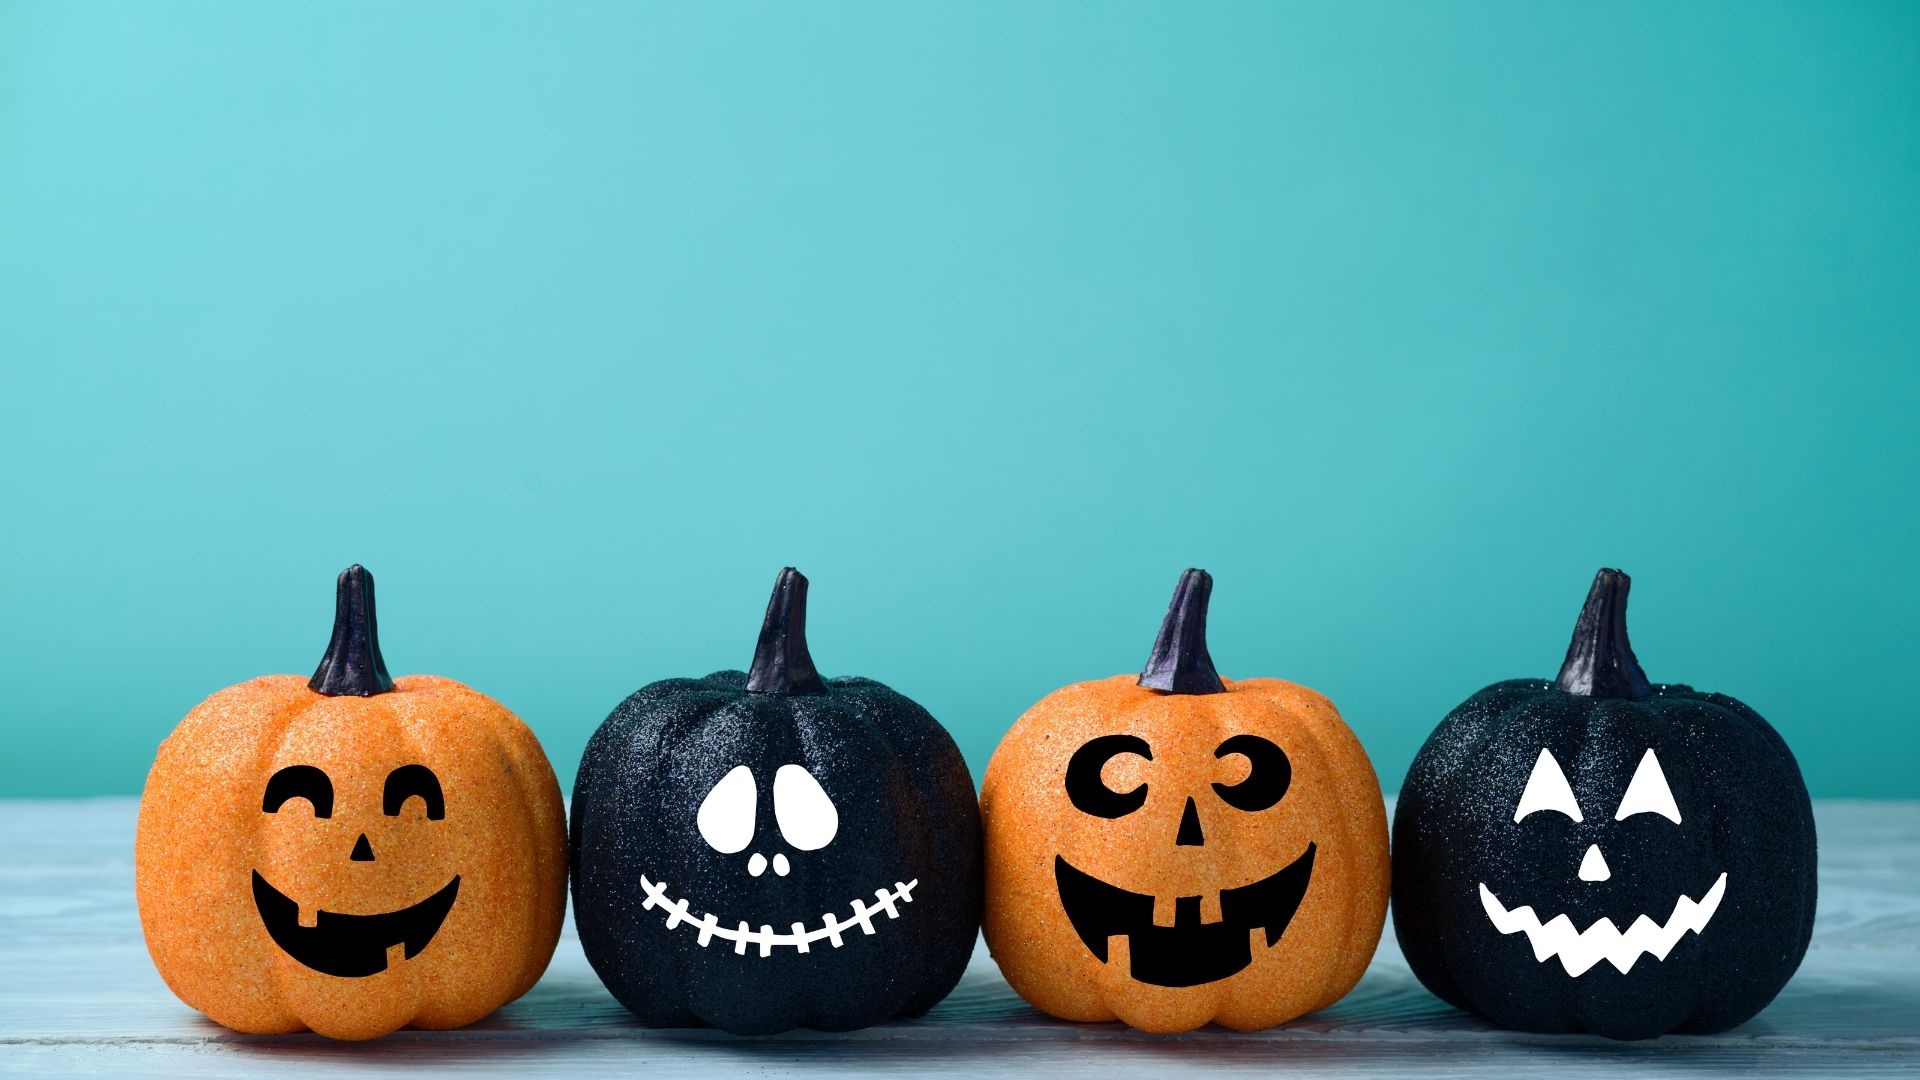 Financial Advisors are not as scary as you thinkImage of four pumpkins, two orange and two black with faces on with a teal coloured background